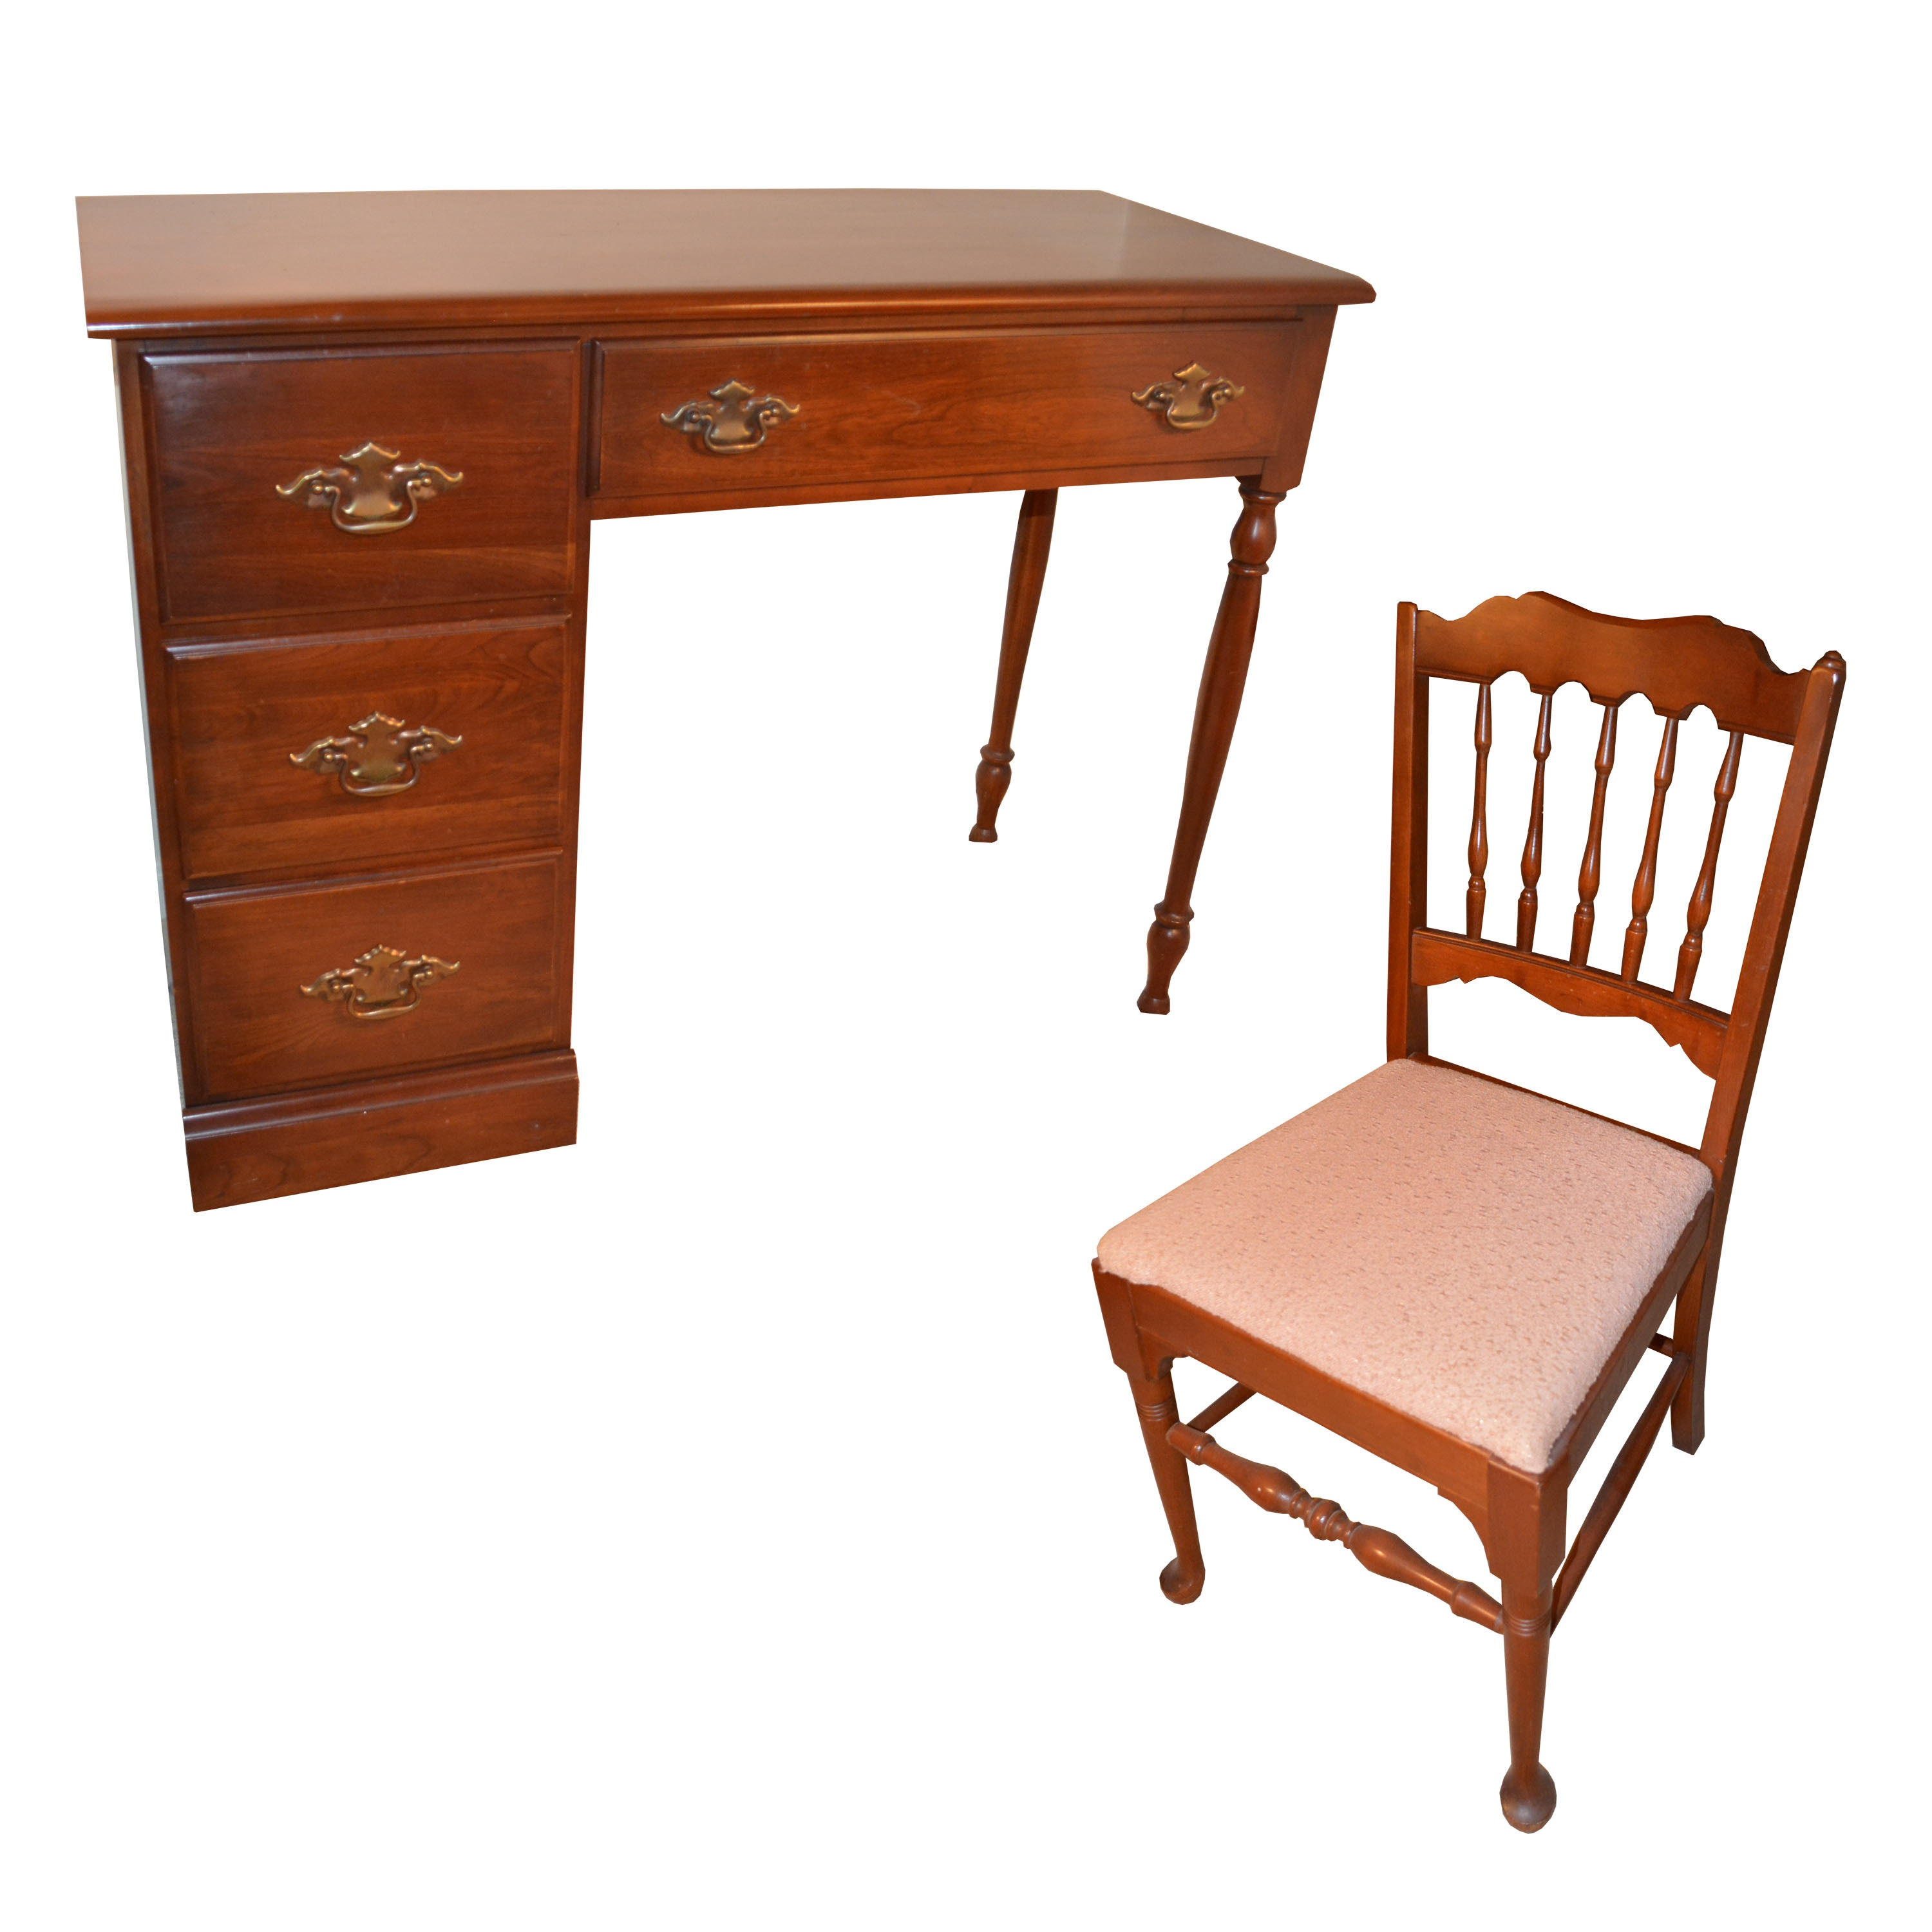 Solid Cherry Writing Desk with Chair by Young-Hinkle